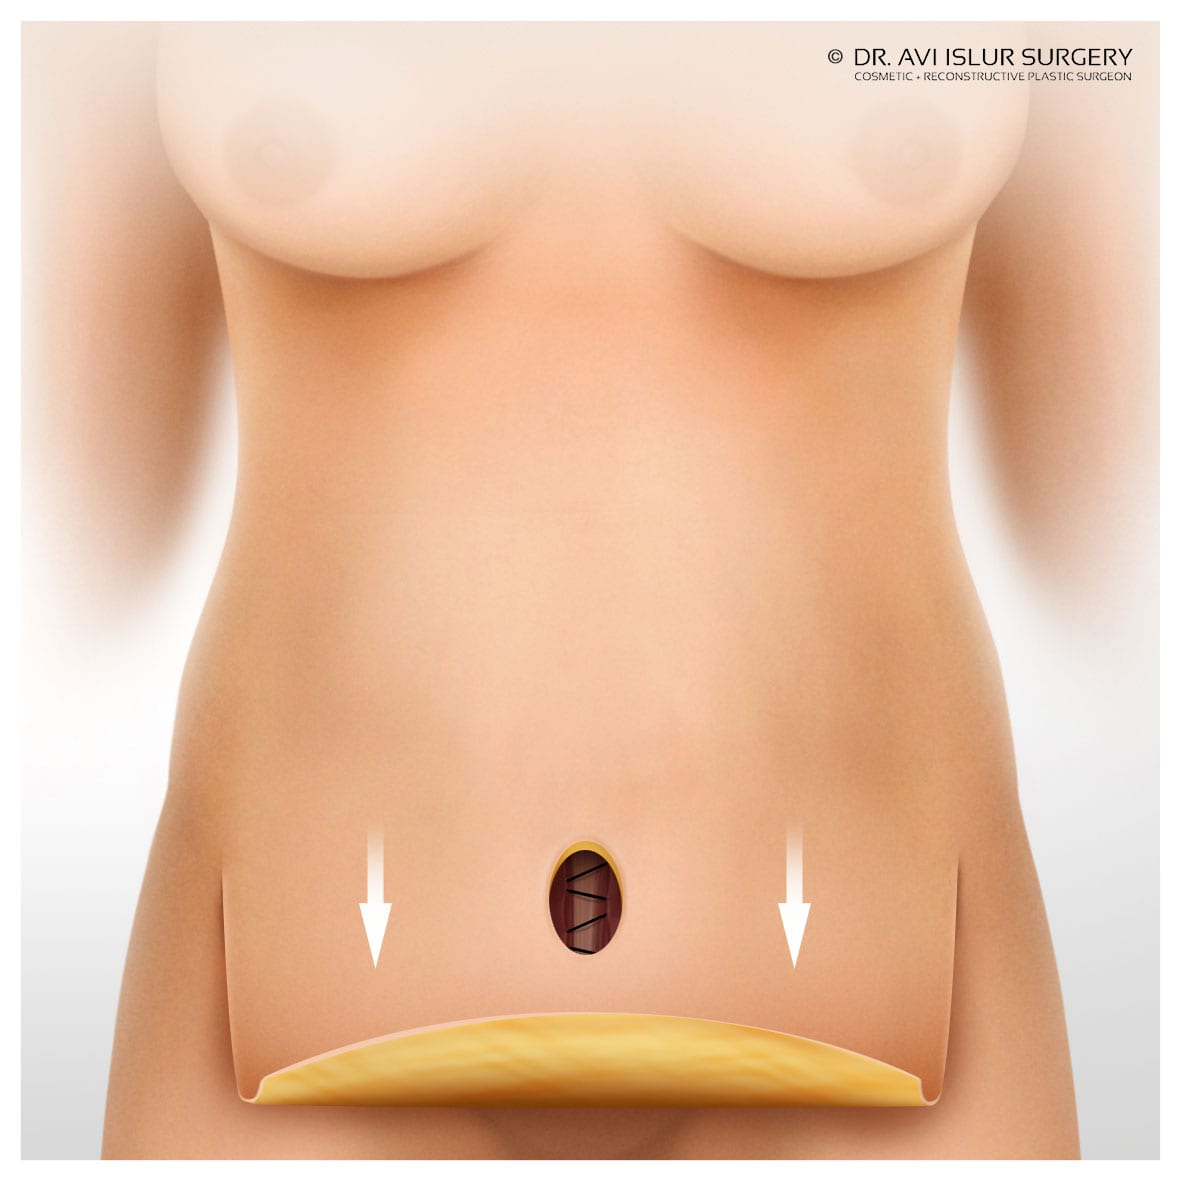 pulling skin and fat down full tummy tuck illustration